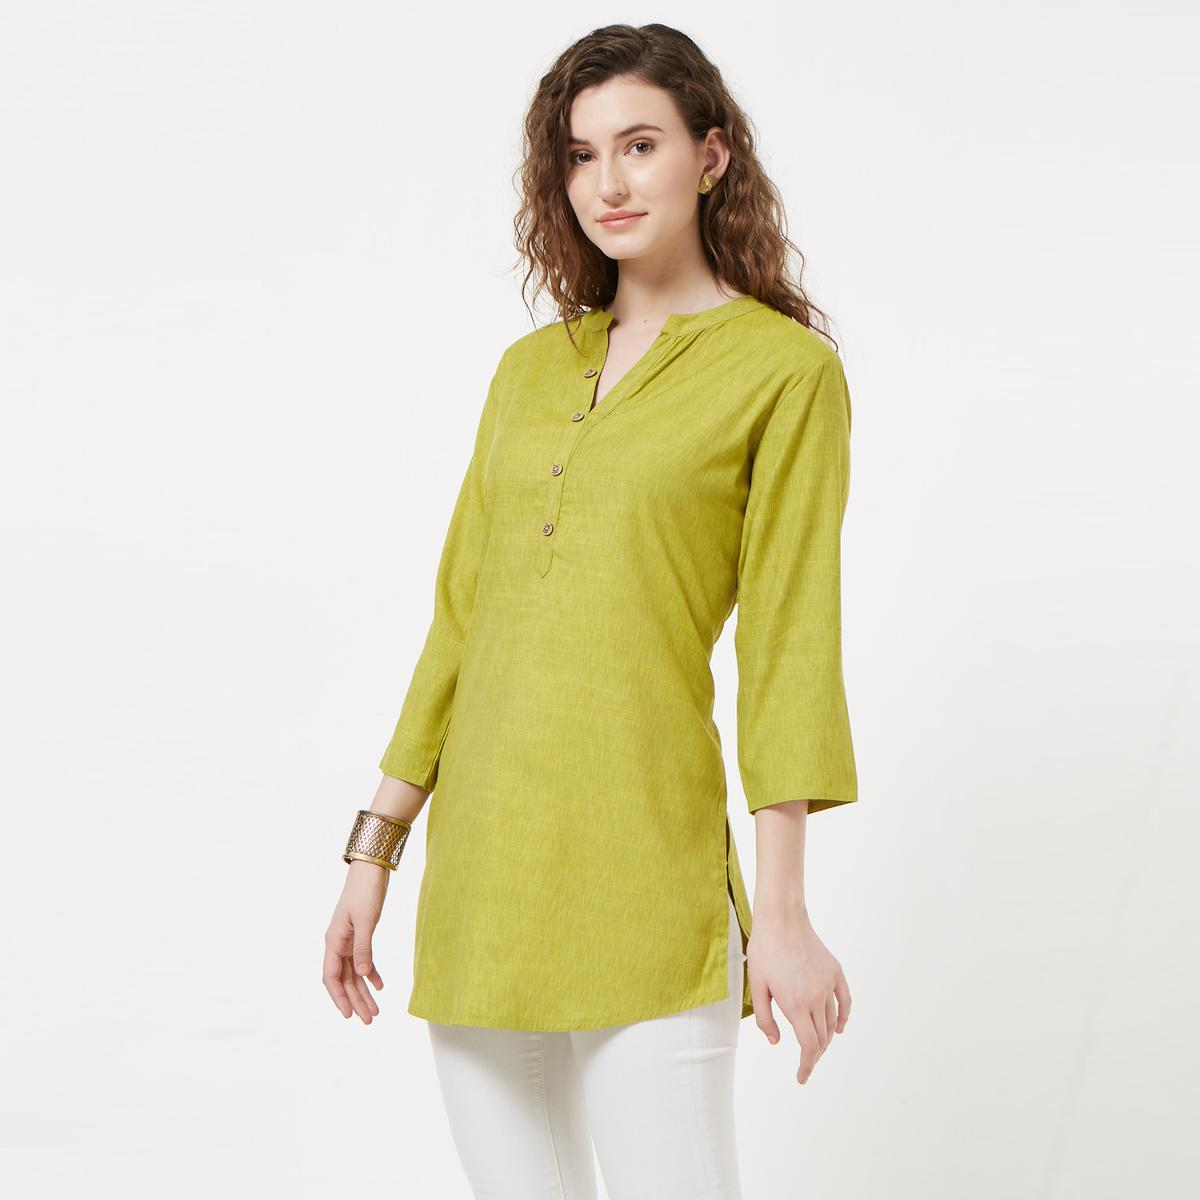 Prominent Green Colored Casual Wear Cotton Top